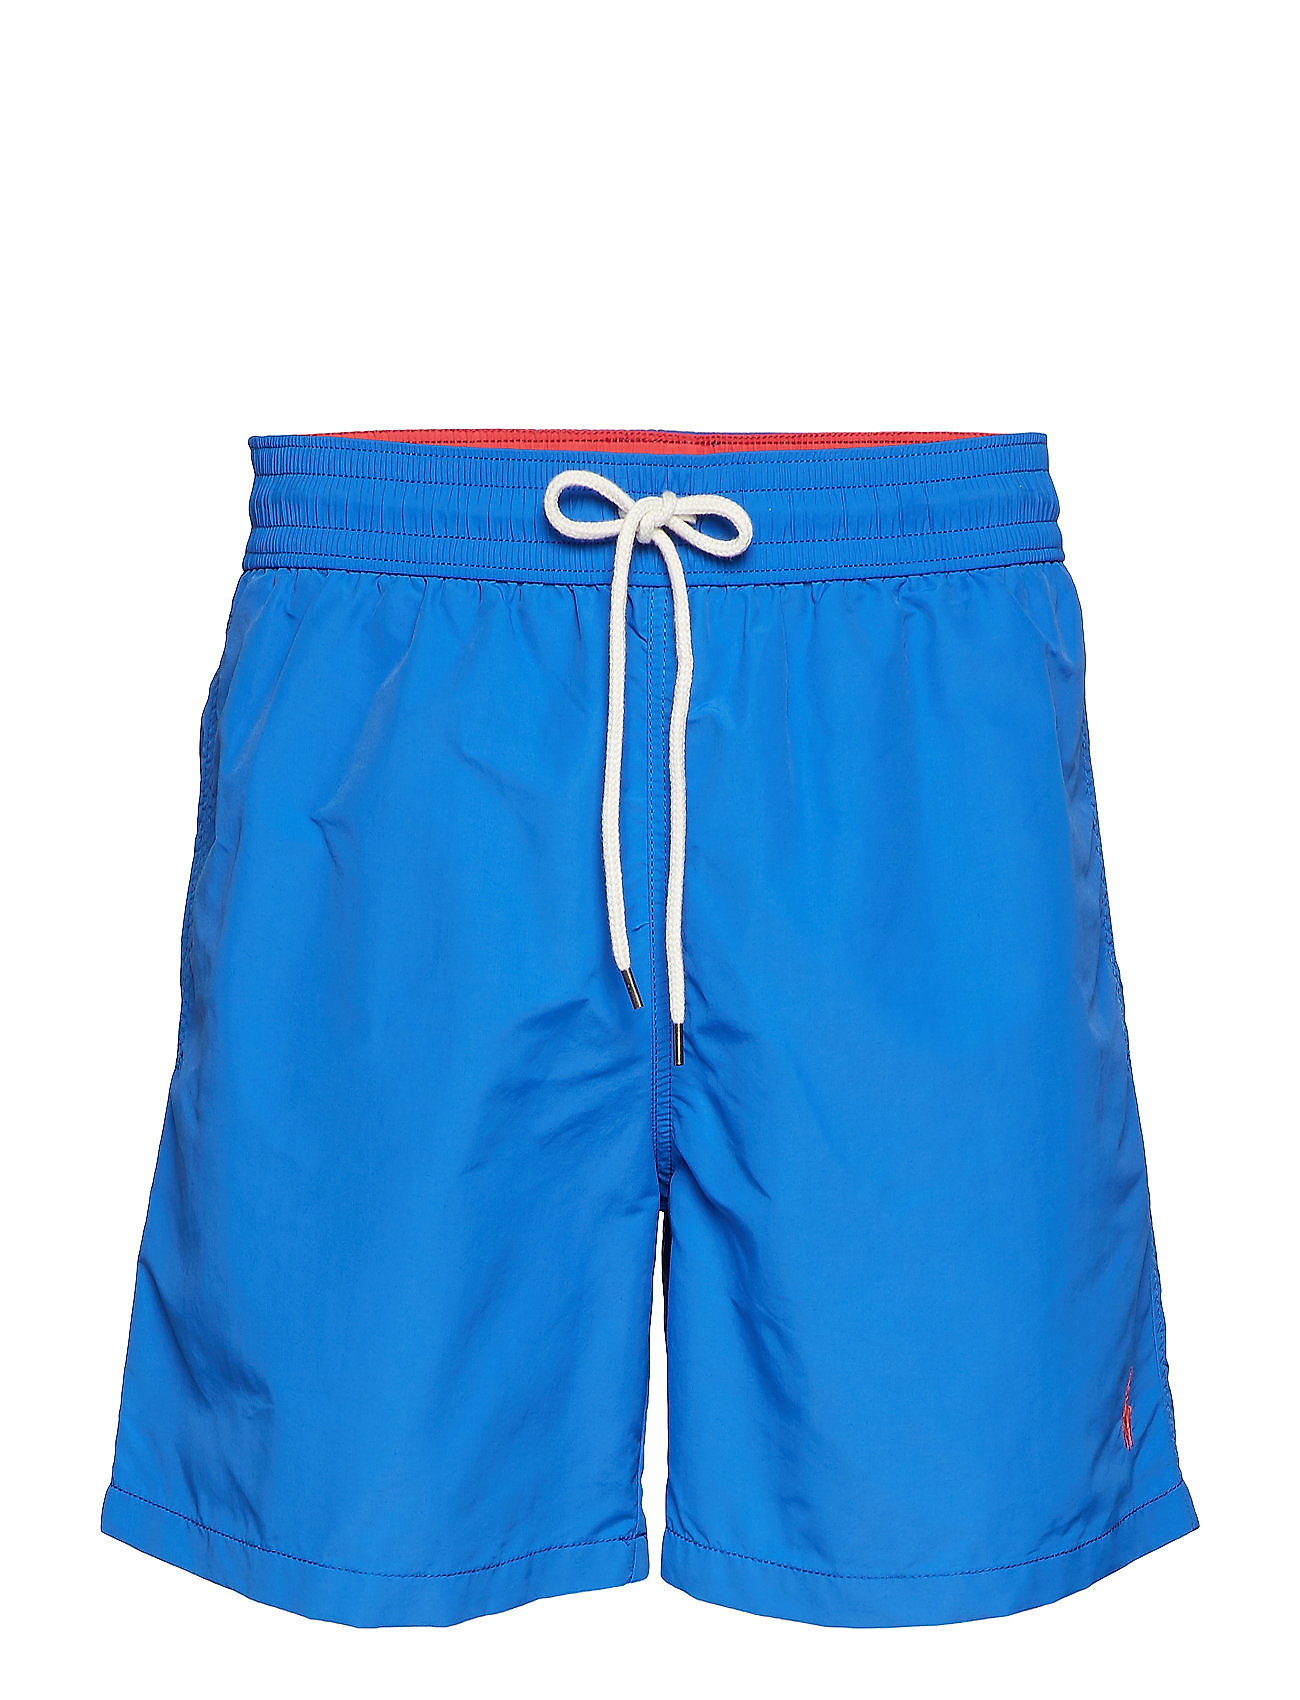 Polo Ralph Lauren 5¾-Inch Traveler Swim Trunk